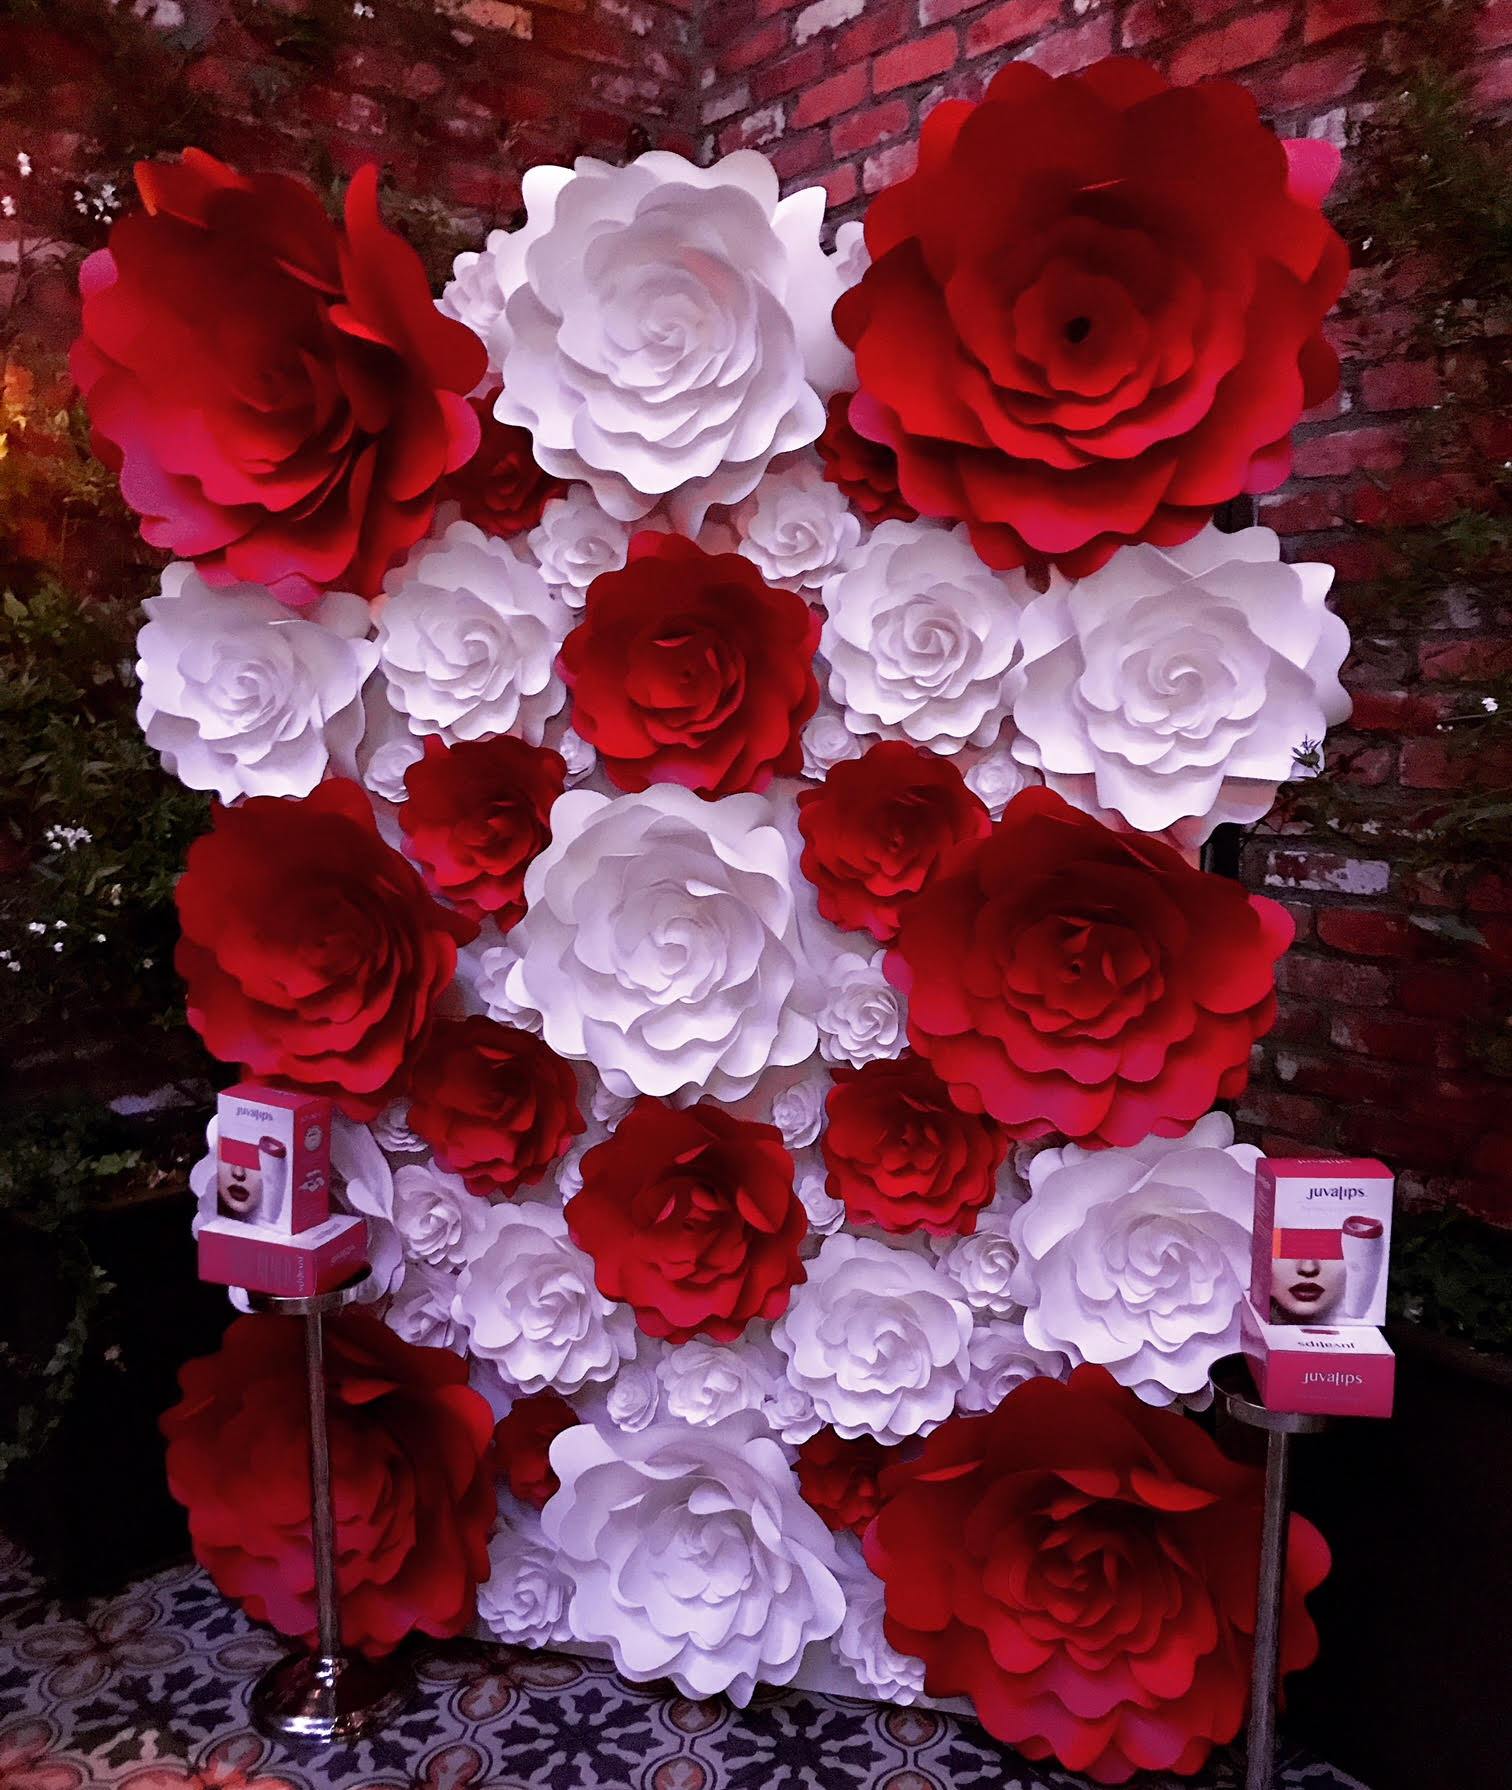 Roses In Red And White Flower Wall 3 Mahi Rehan